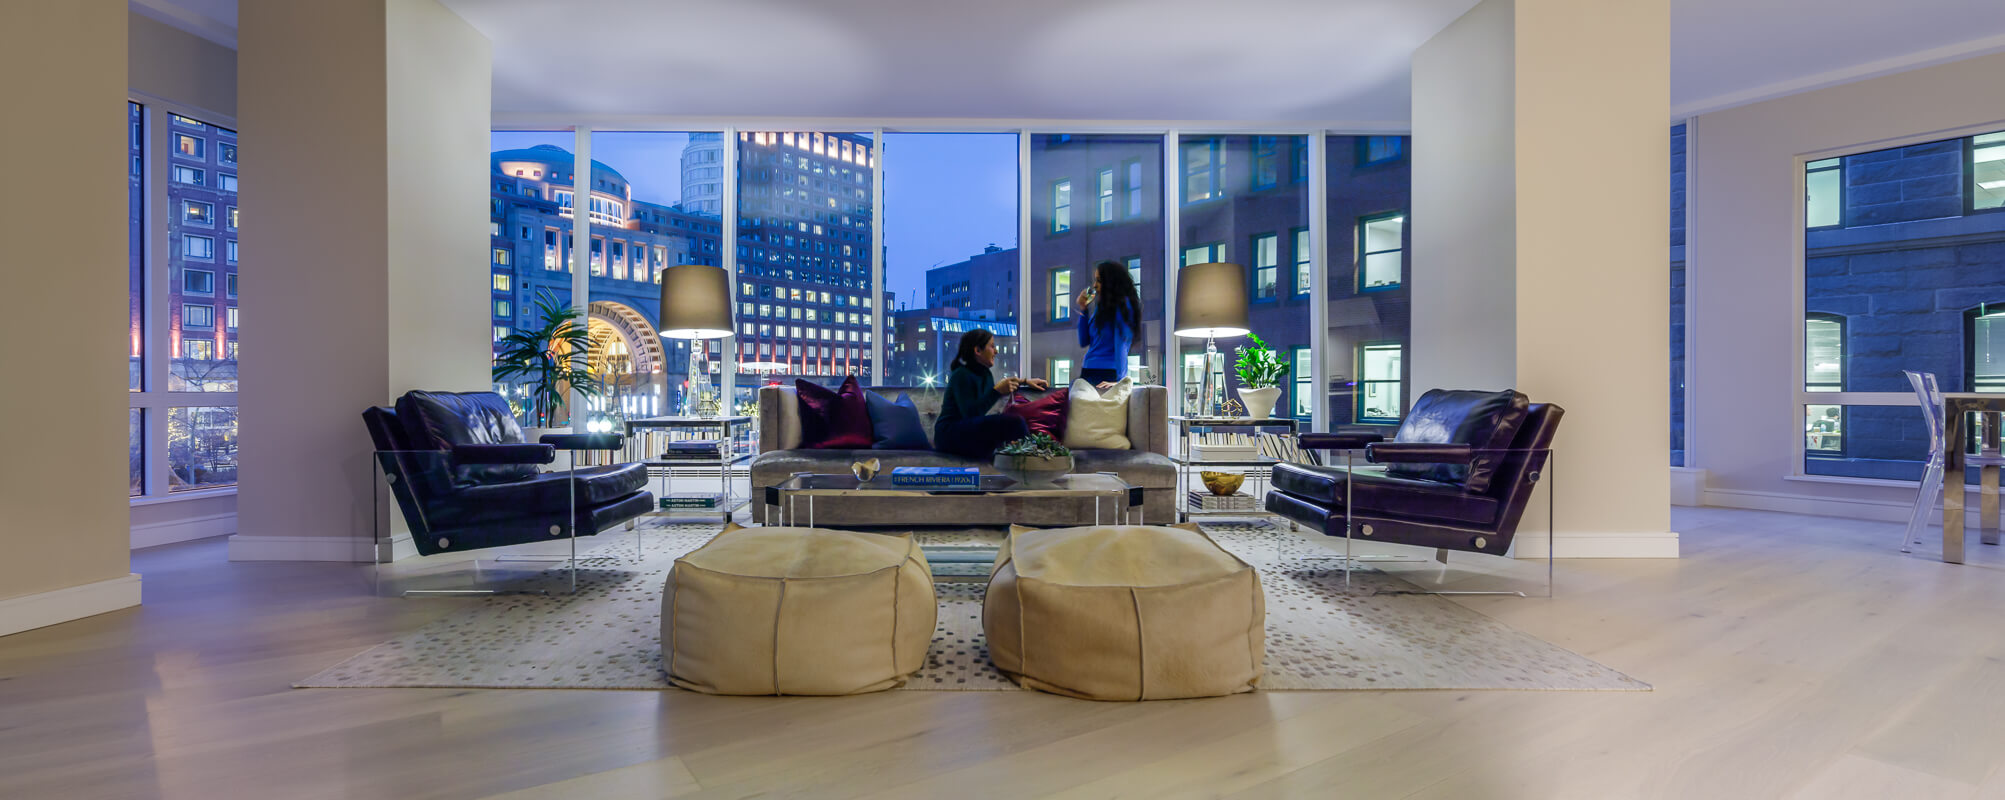 Woman on a couch drinking wine with another woman standing up in a modern, white apartment with large floor-to-ceiling windows revealing Boston buildings at dusk.